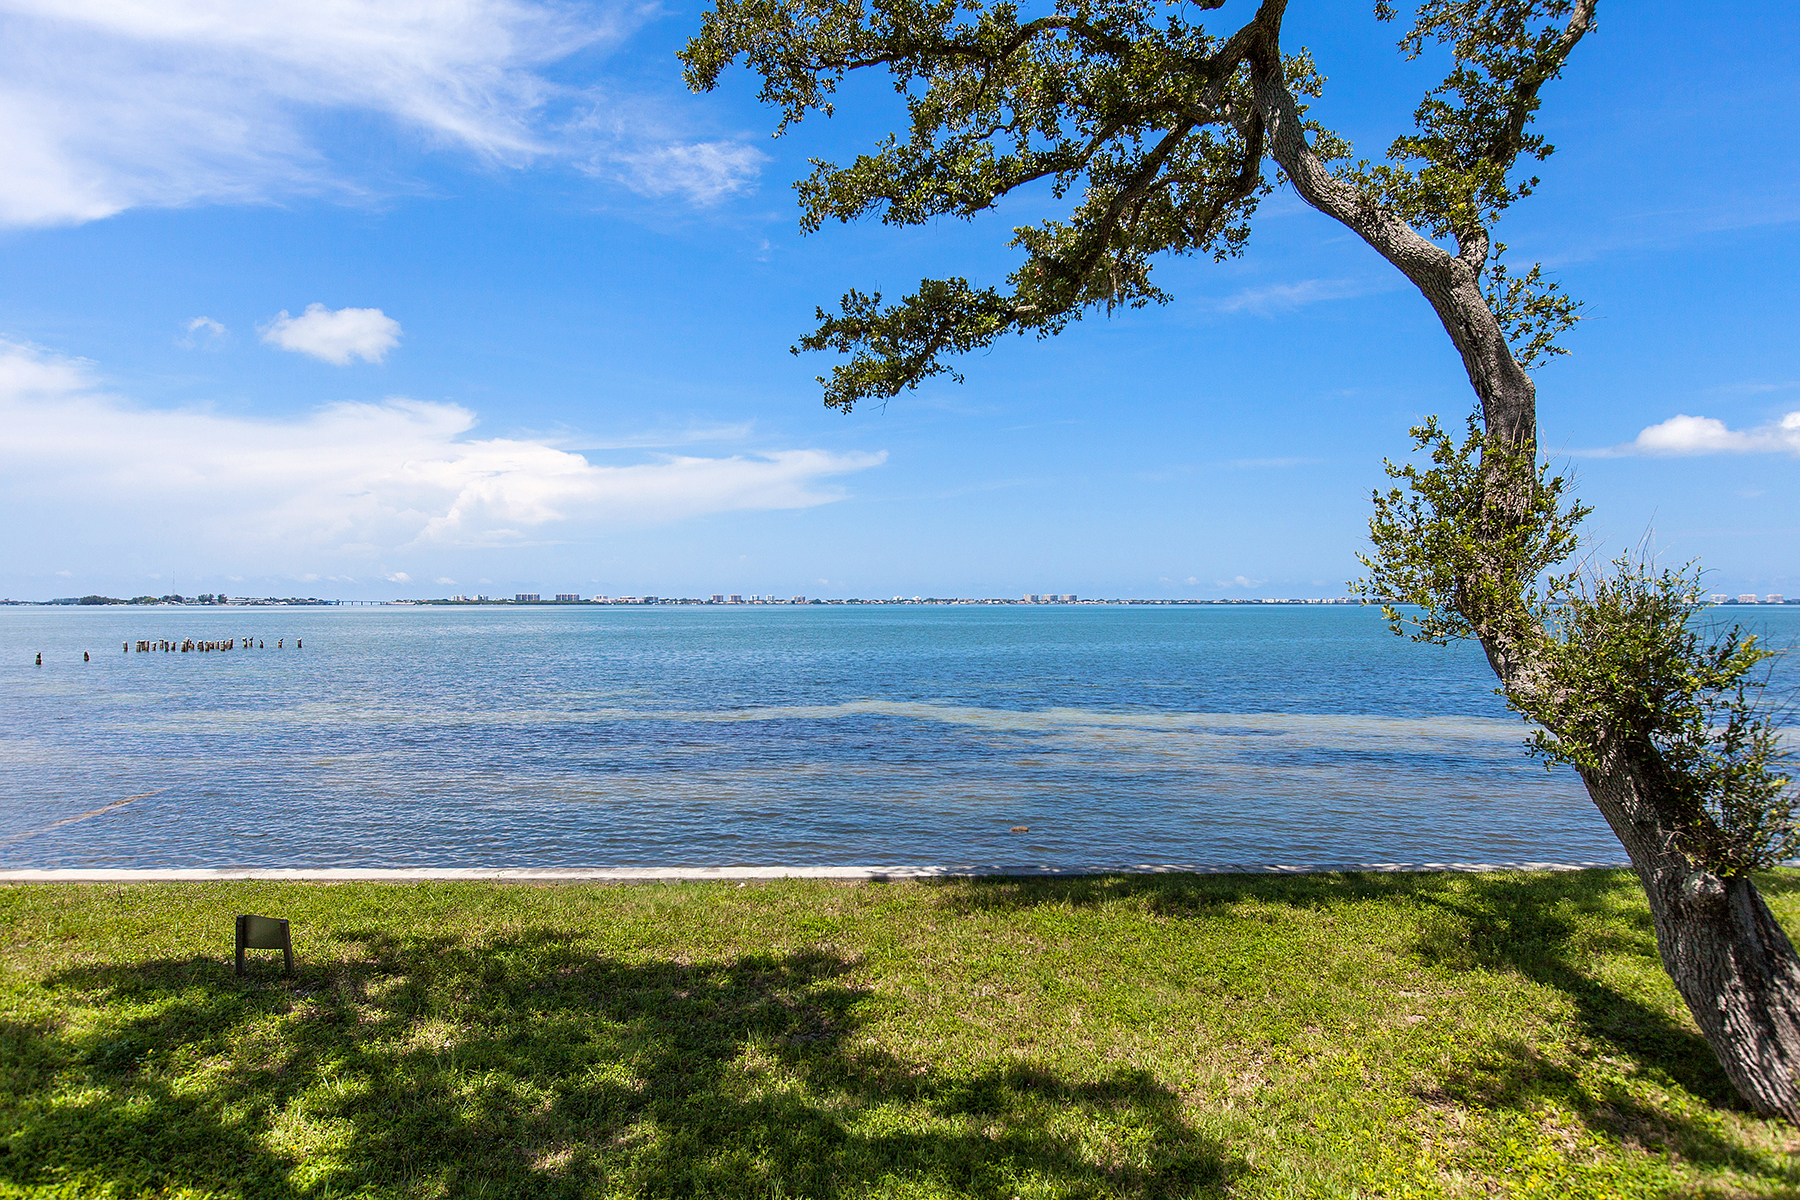 Property For Sale at SARASOTA BAY PARK